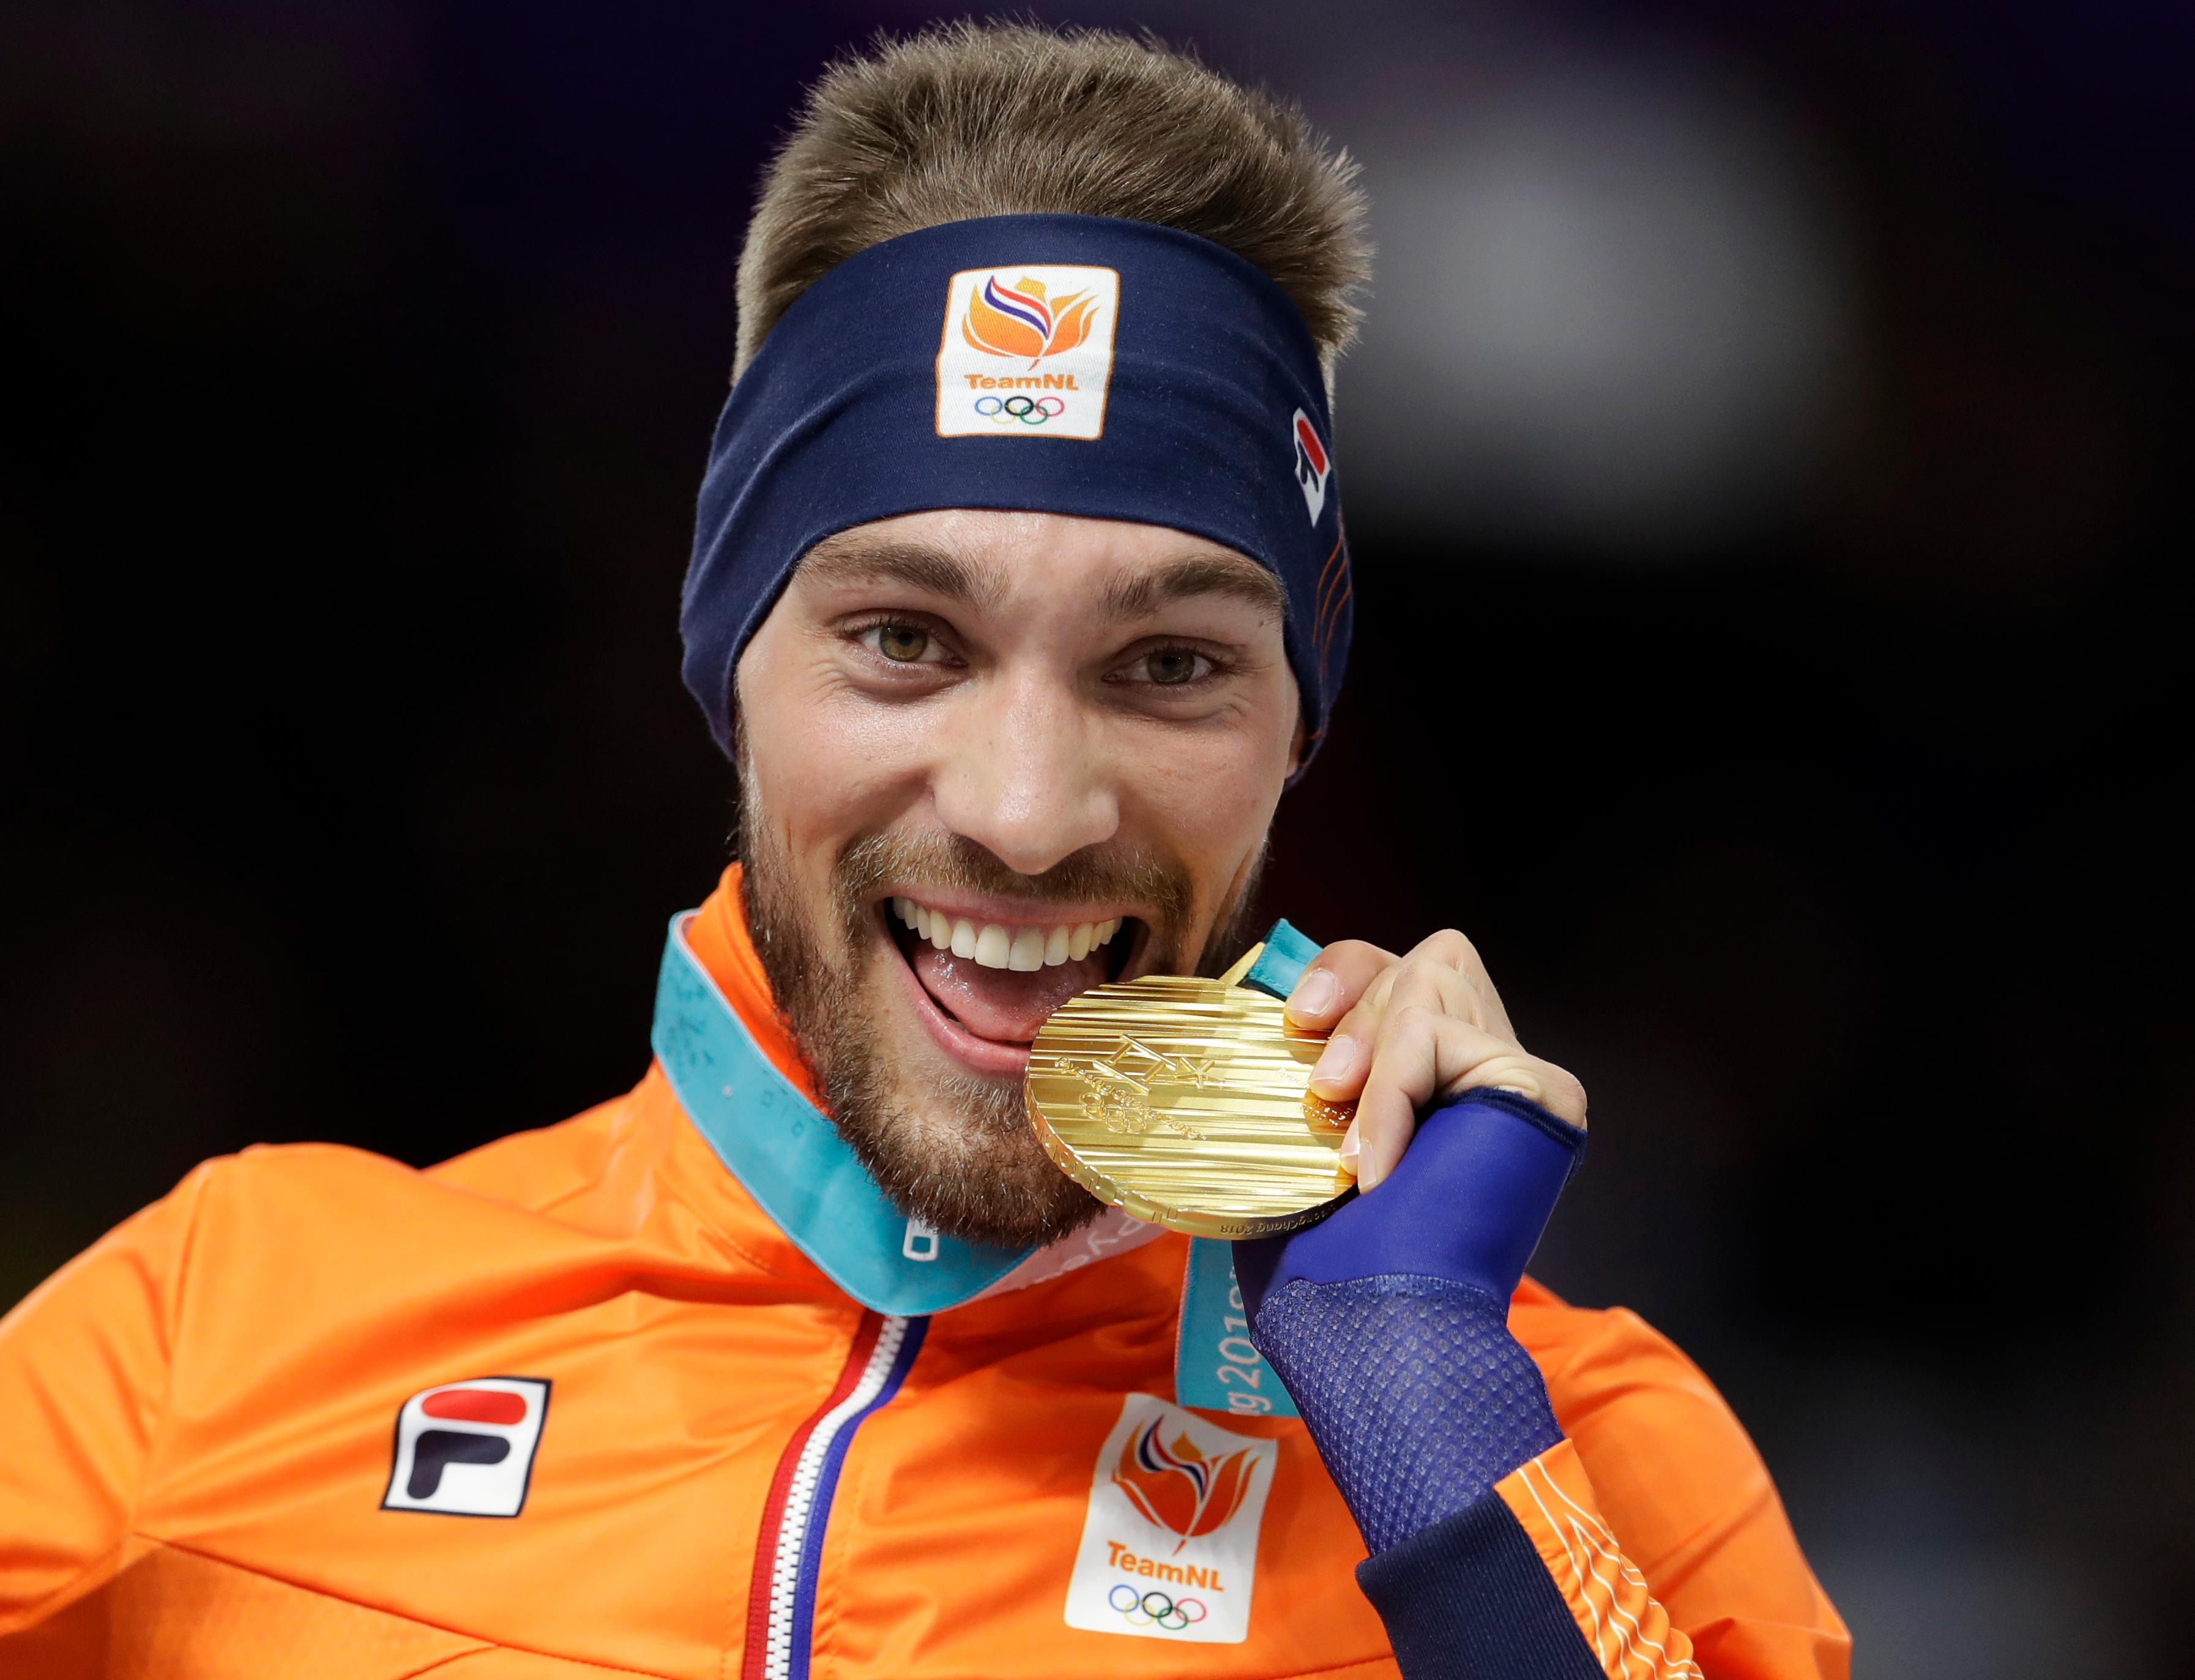 Gold medalist Kjeld Nuis of The Netherlands celebrates on the podium after the men's 1,000 meters speedskating race at the Gangneung Oval at the 2018 Winter Olympics in Gangneung, South Korea, Friday, Feb. 23, 2018. (AP Photo/Petr David Josek)